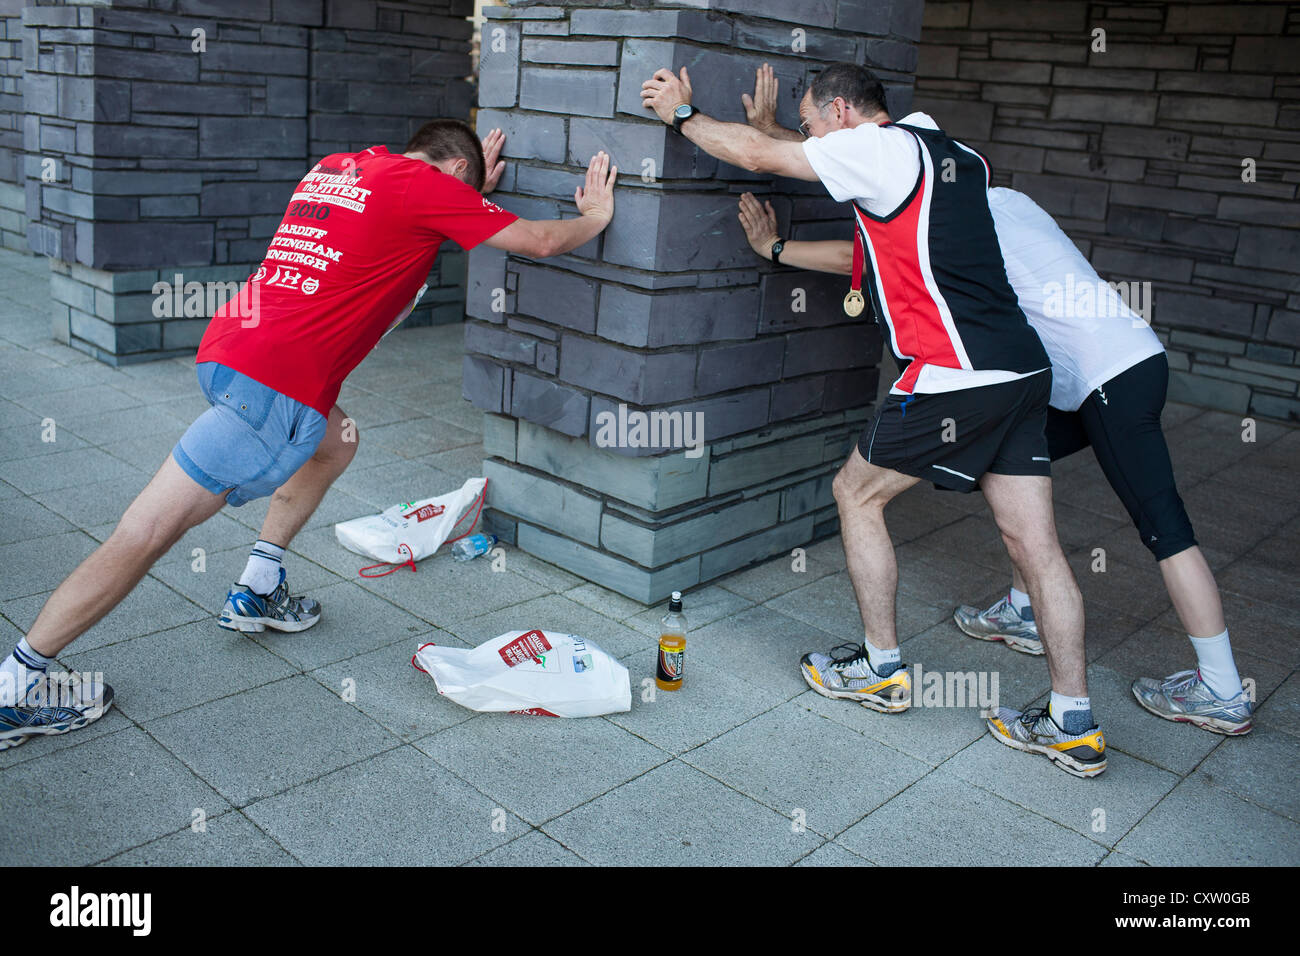 Runners stretch after taking part in the Cardiff Half Marathon - Stock Image